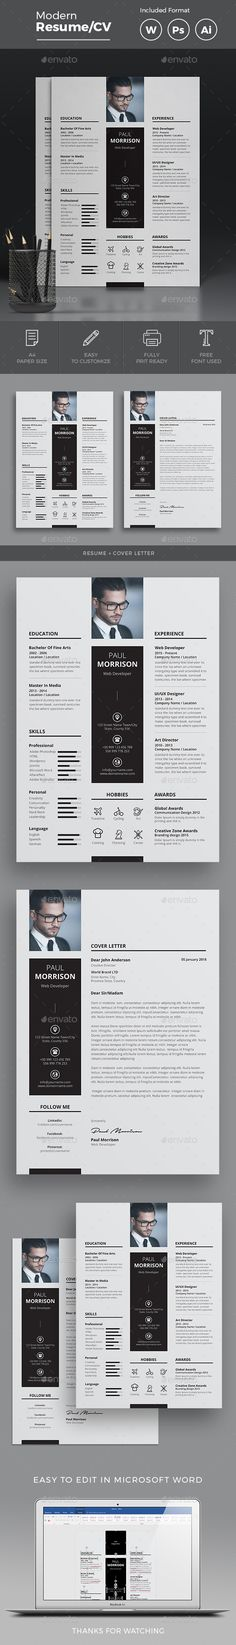 Clean & Modern Resume/cv template to help you land that great job. The flexible page designs are easy to use and customize, so you Modern Cv Template, Resume Design Template, Creative Resume Templates, Resume Format, Resume Cv, Resume Writing, Resume Tips, Cv Simple, Cv Curriculum